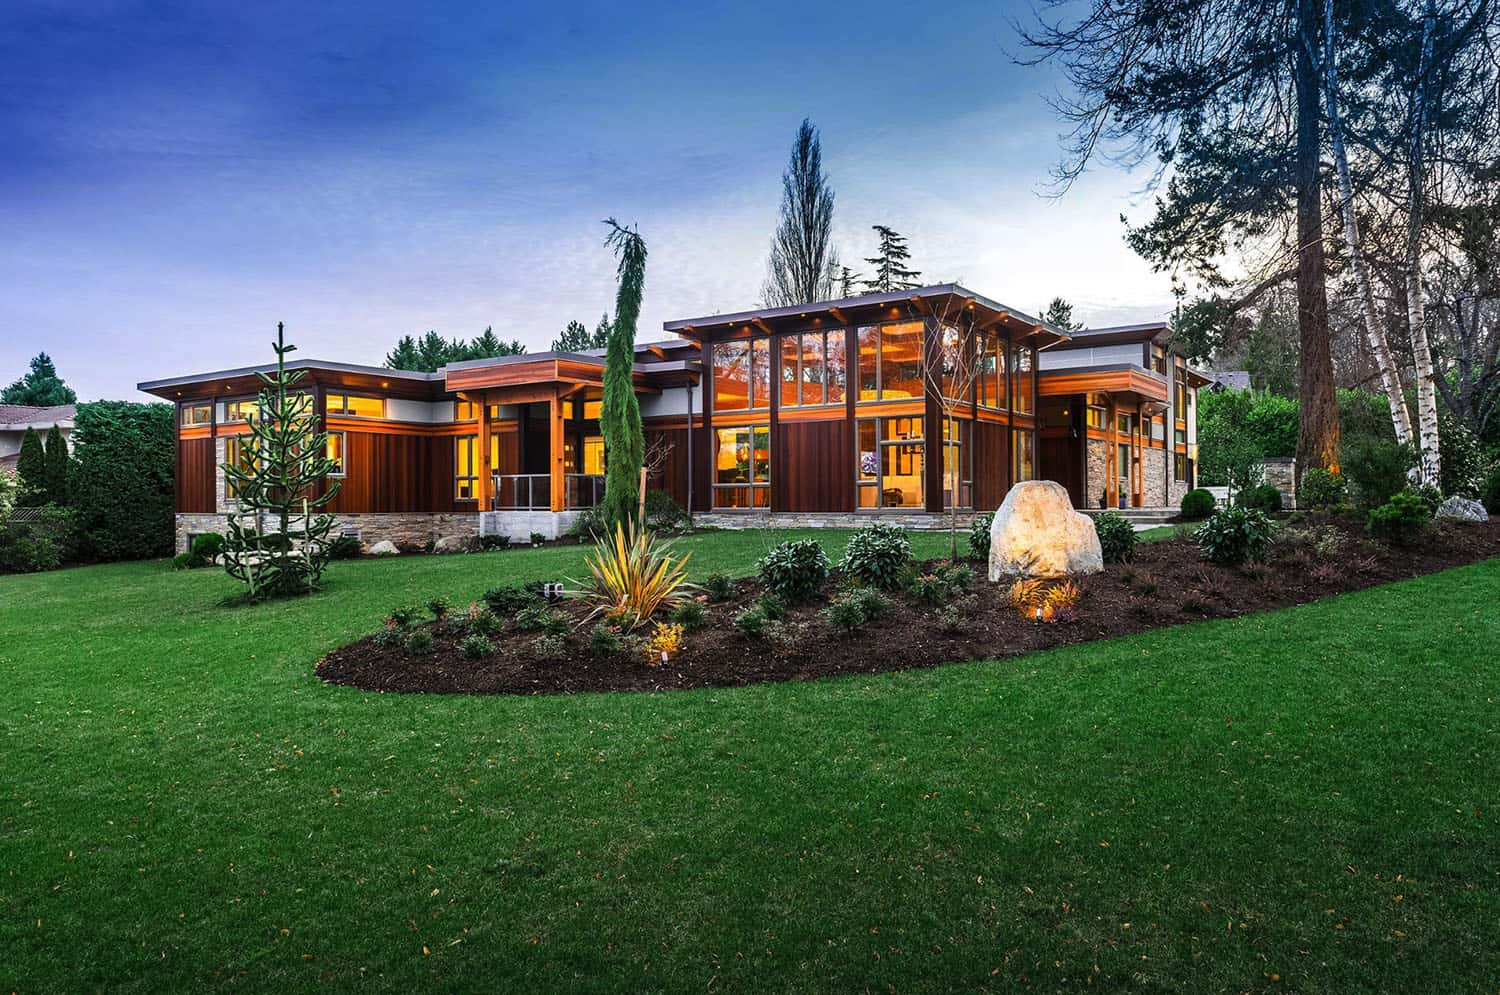 west-coast-modern-home-exterior